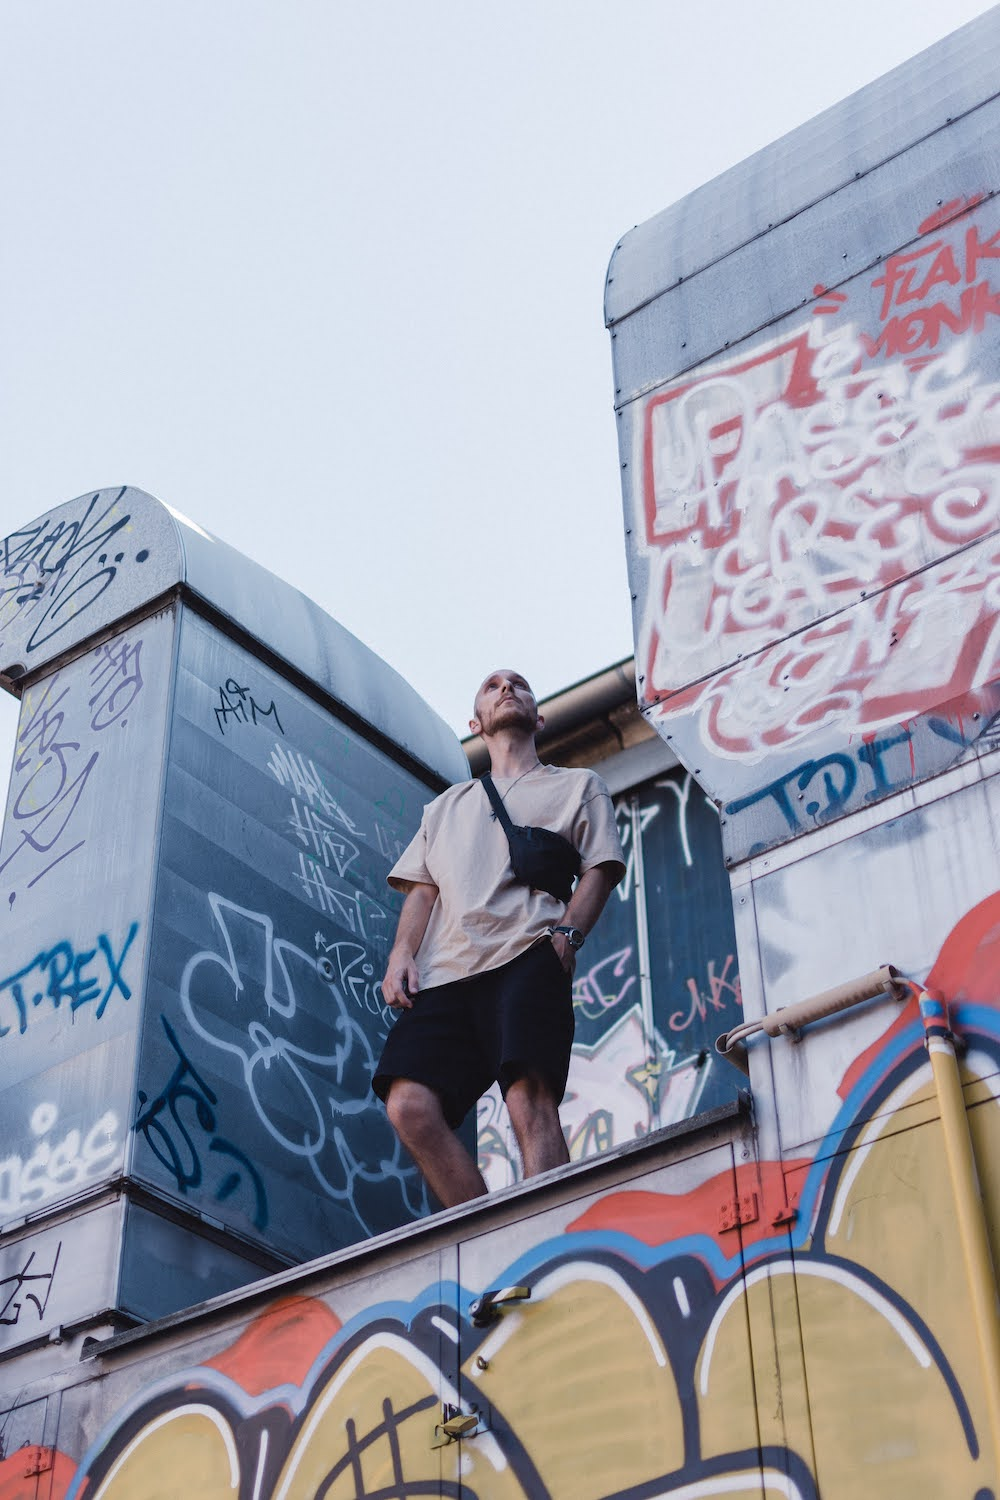 RAW-Gelände complex as one of the best shooting location in Berlin. Photo by Carmen Gondard